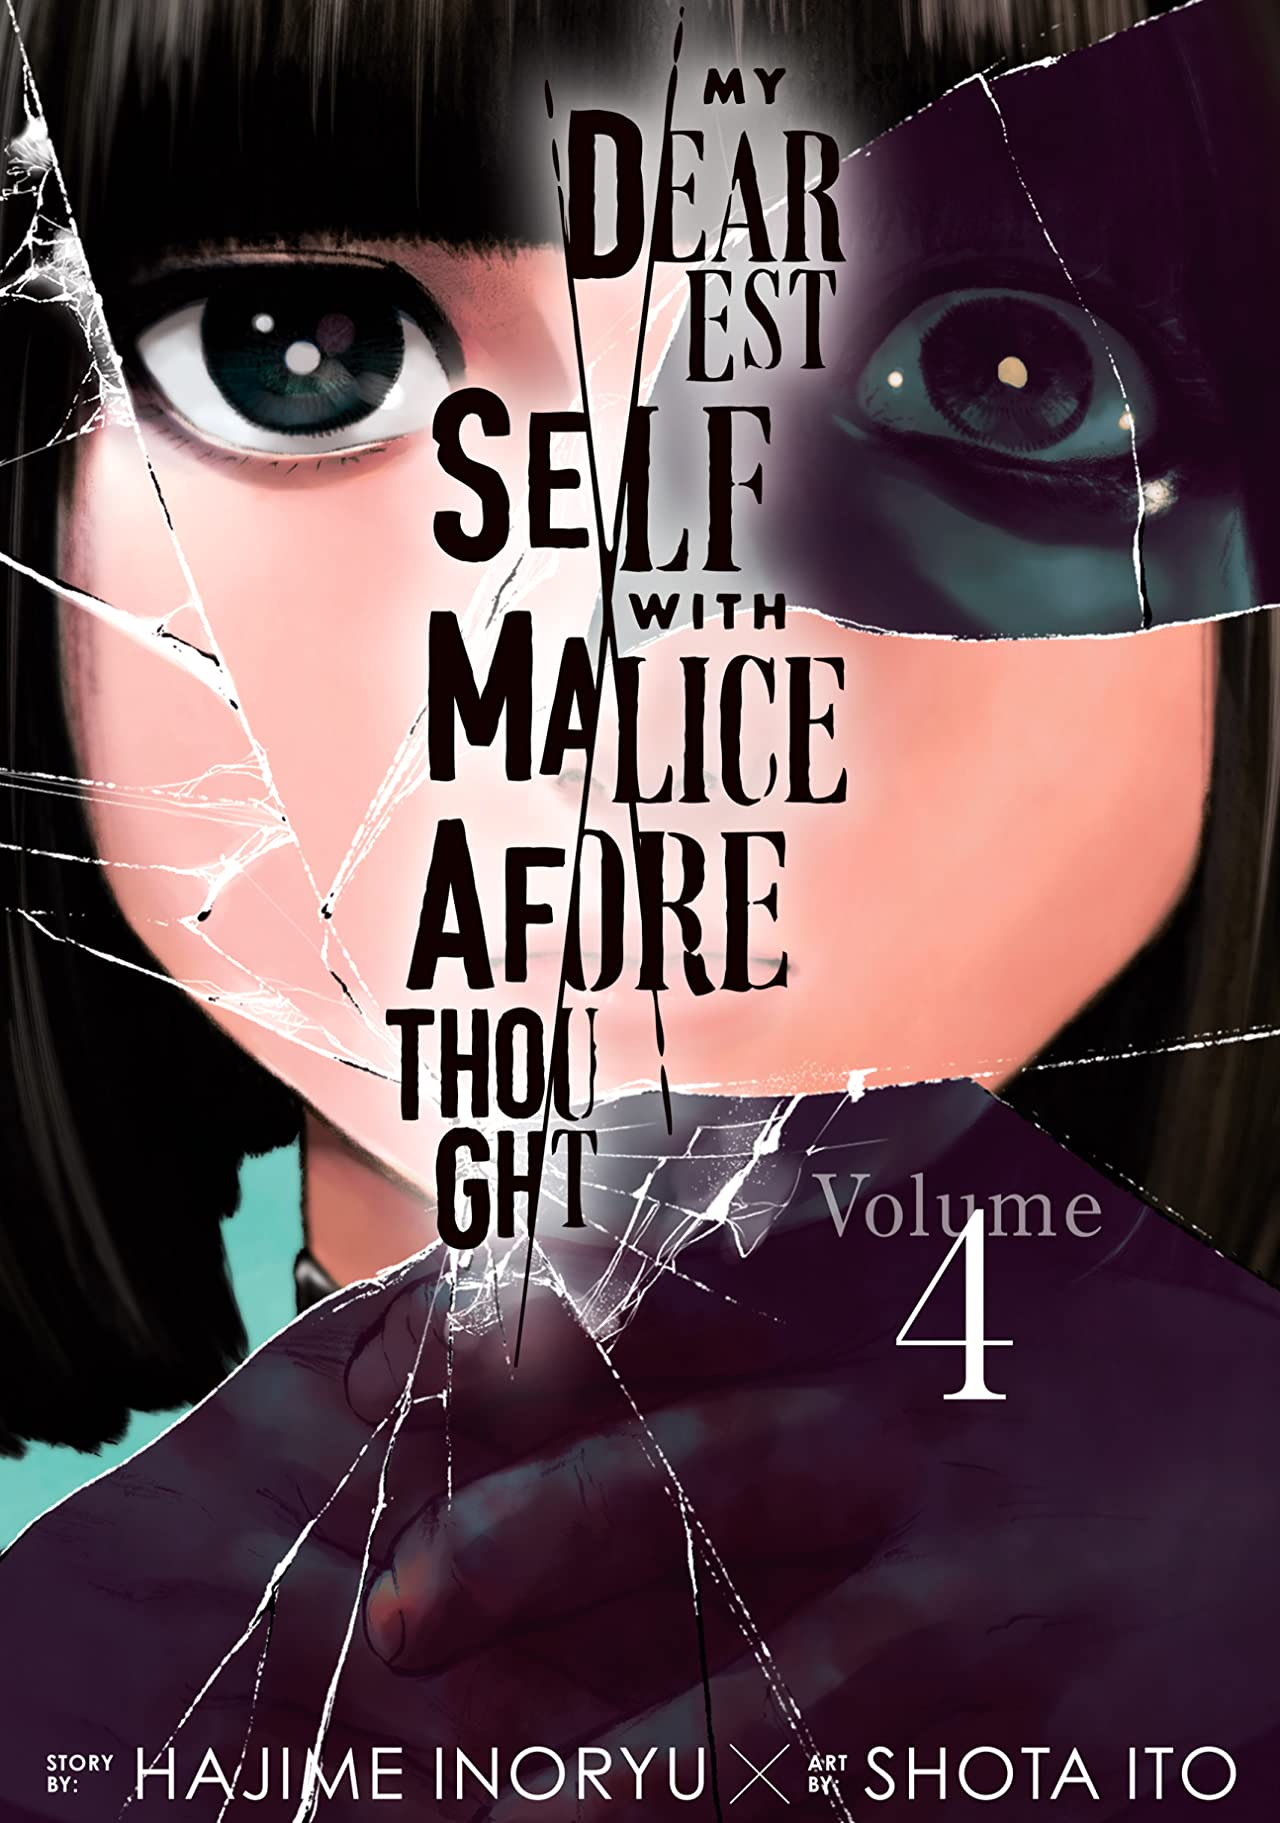 My Dearest Self with Malice Aforethought Vol. 4